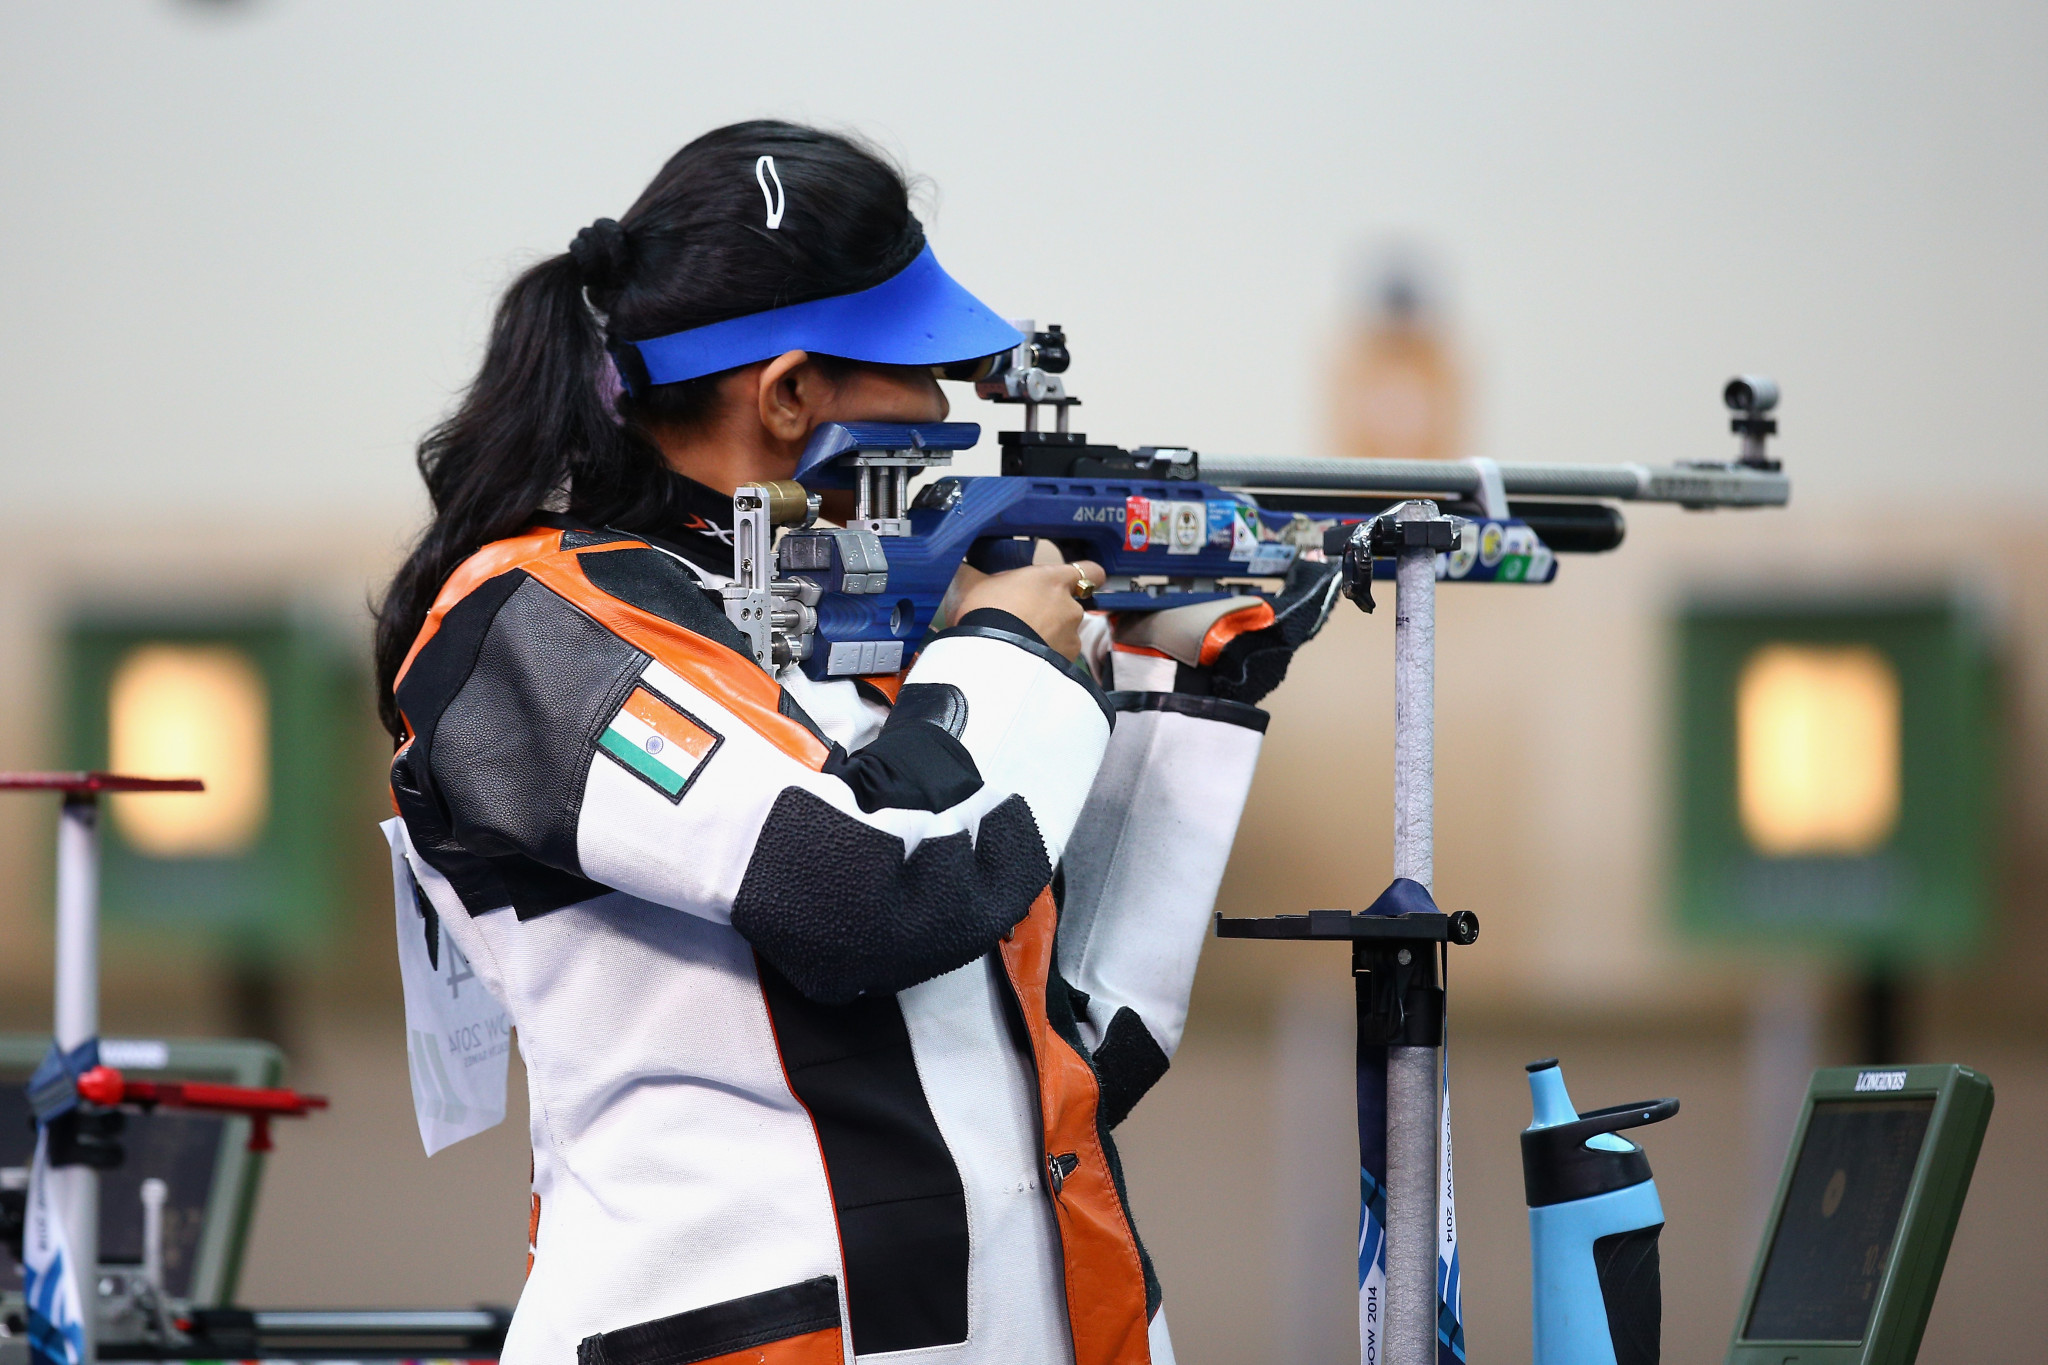 The Indian Olympic Association has called for the team to pull out of the Games after shooting was dropped from the medal programme ©Getty Images